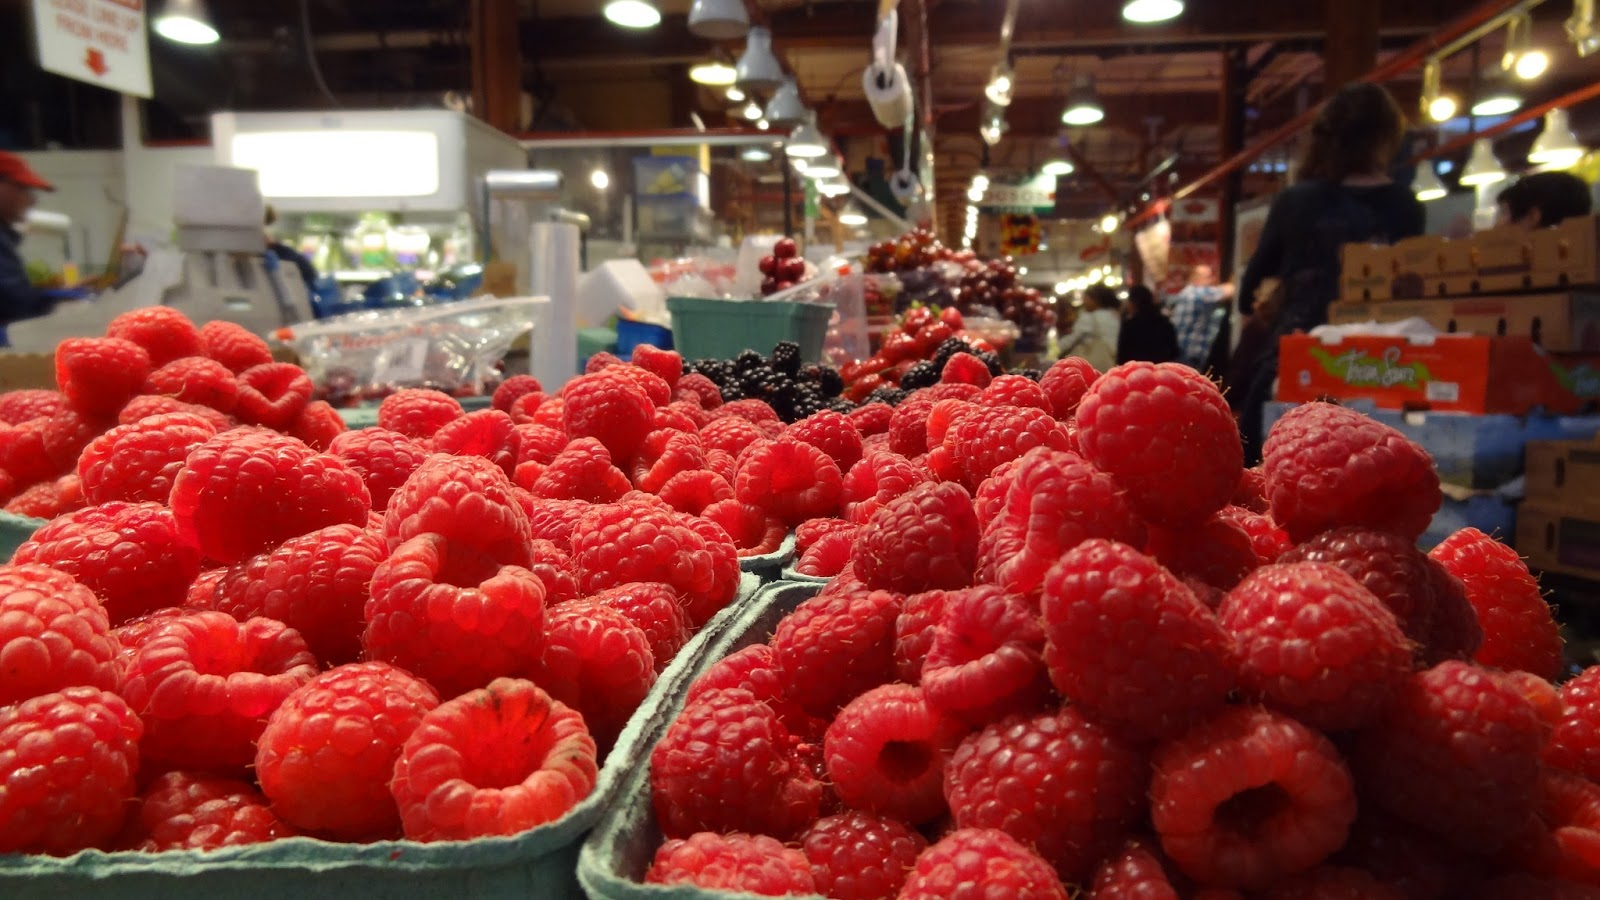 Raspberries at Granville Island